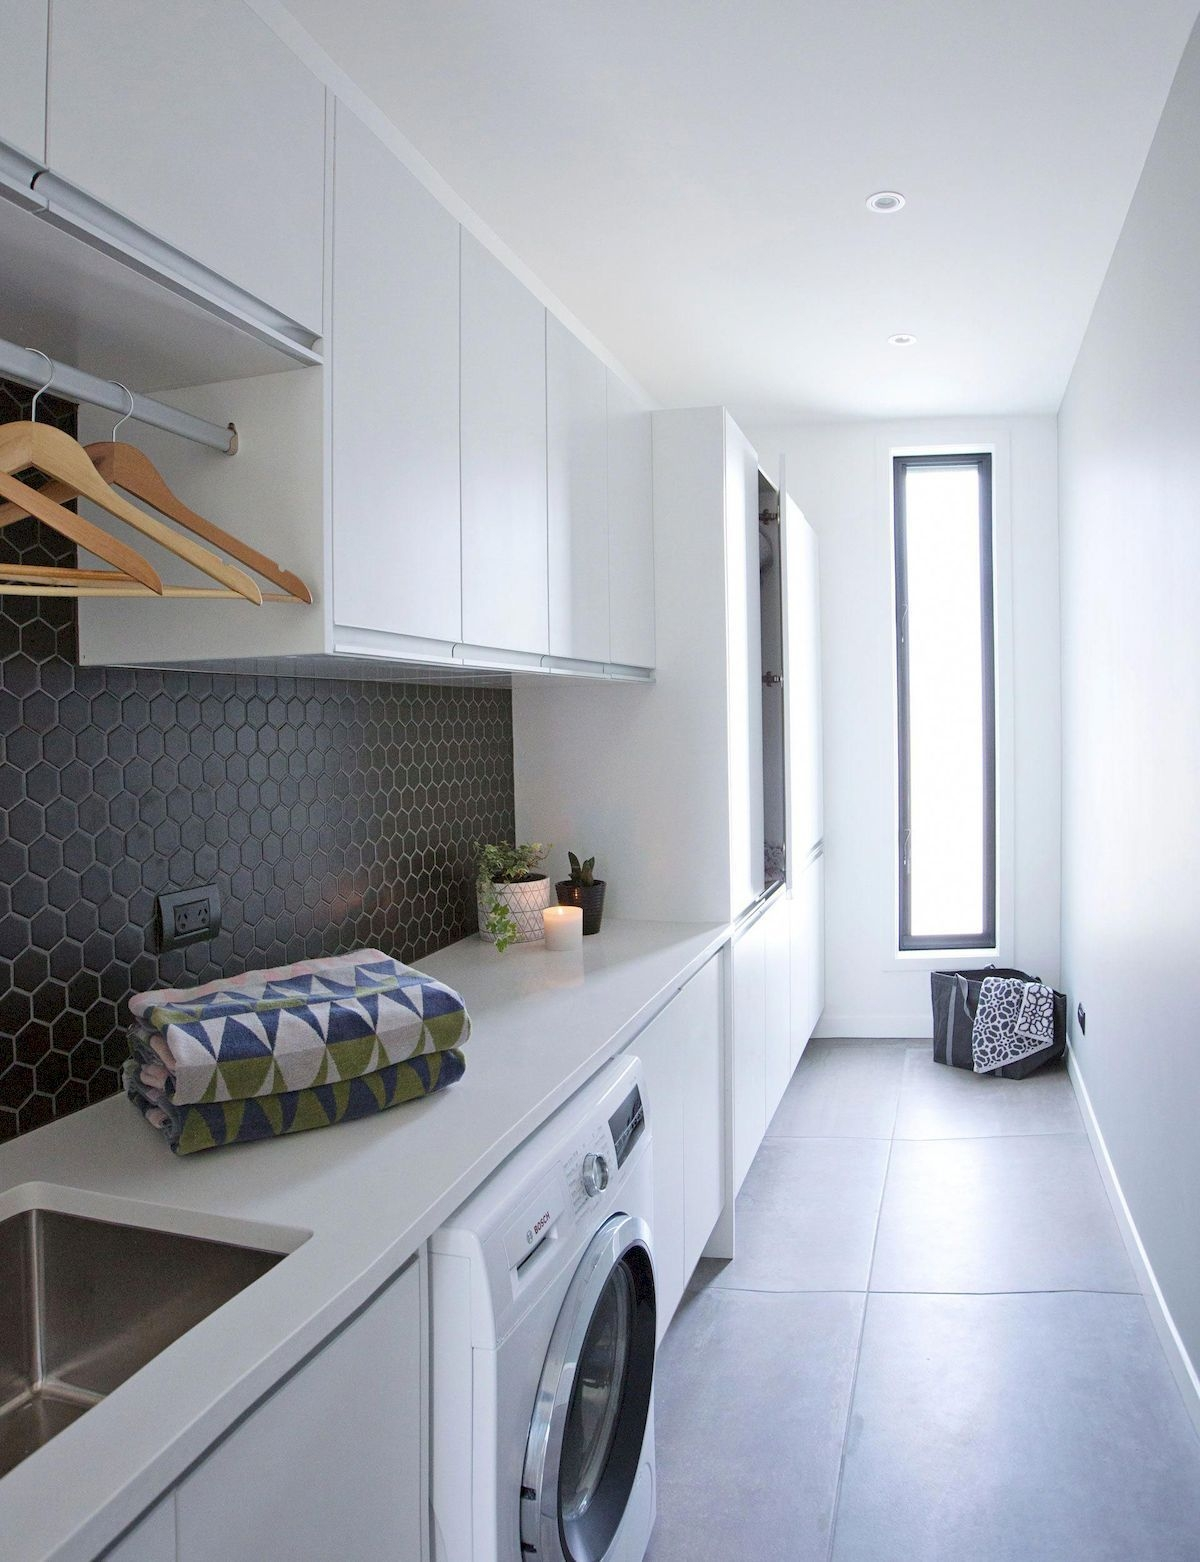 Best Laundry Room Design Ideas To Try This Season30